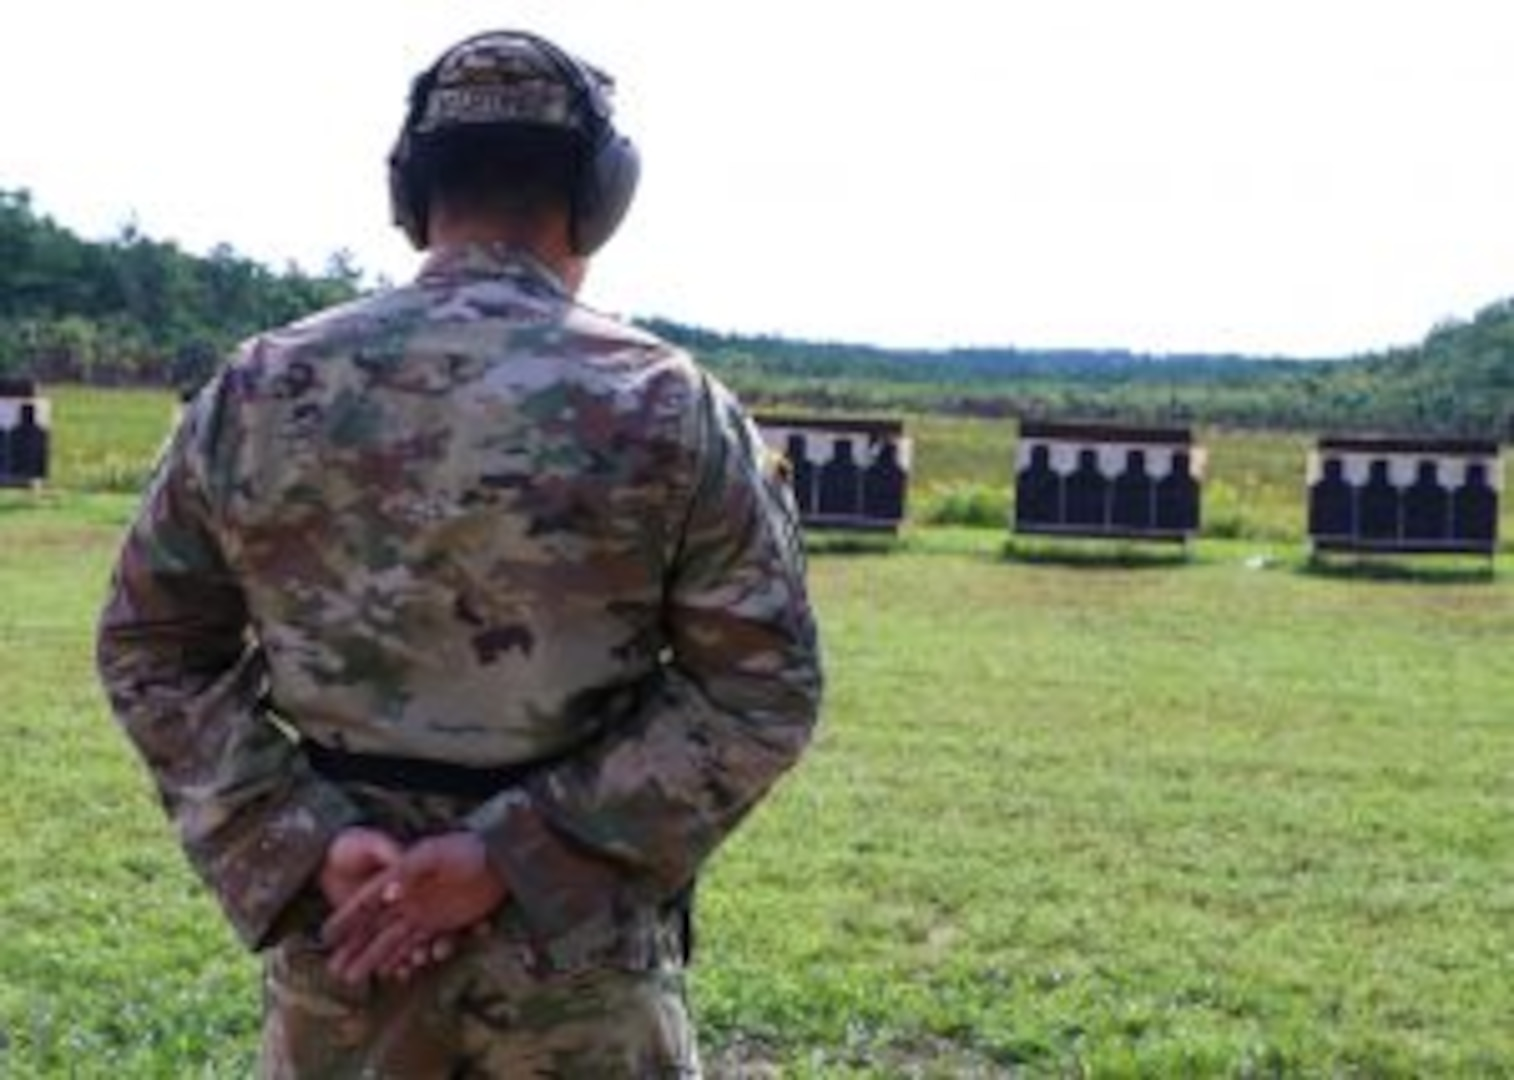 Virginia National Guard Soldiers assigned to the Virginia Beach-based 329th Regional Support Group compete with the M4 pistol during a competition Aug. 19, 2020, at Fort Pickett, Virginia.